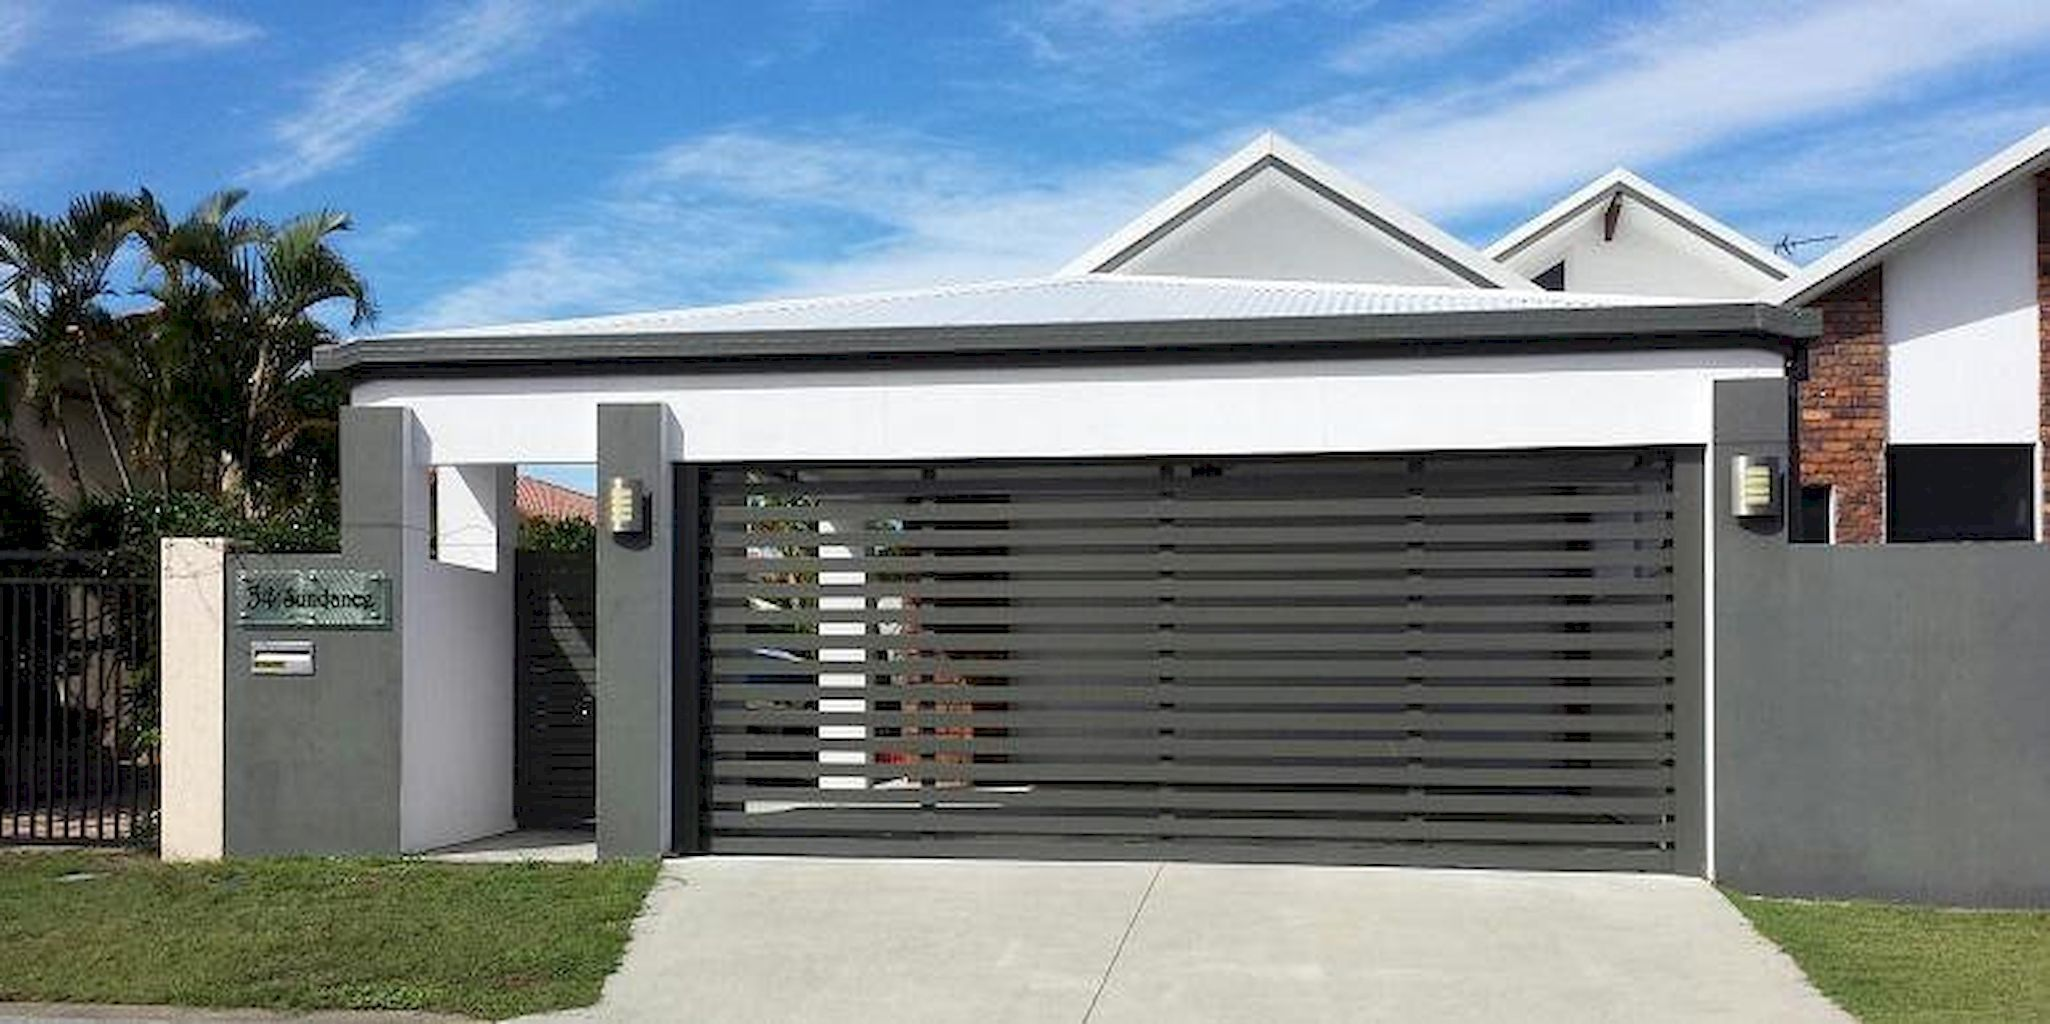 55 adorable modern carports garage designs ideas modern for Garage designs pictures